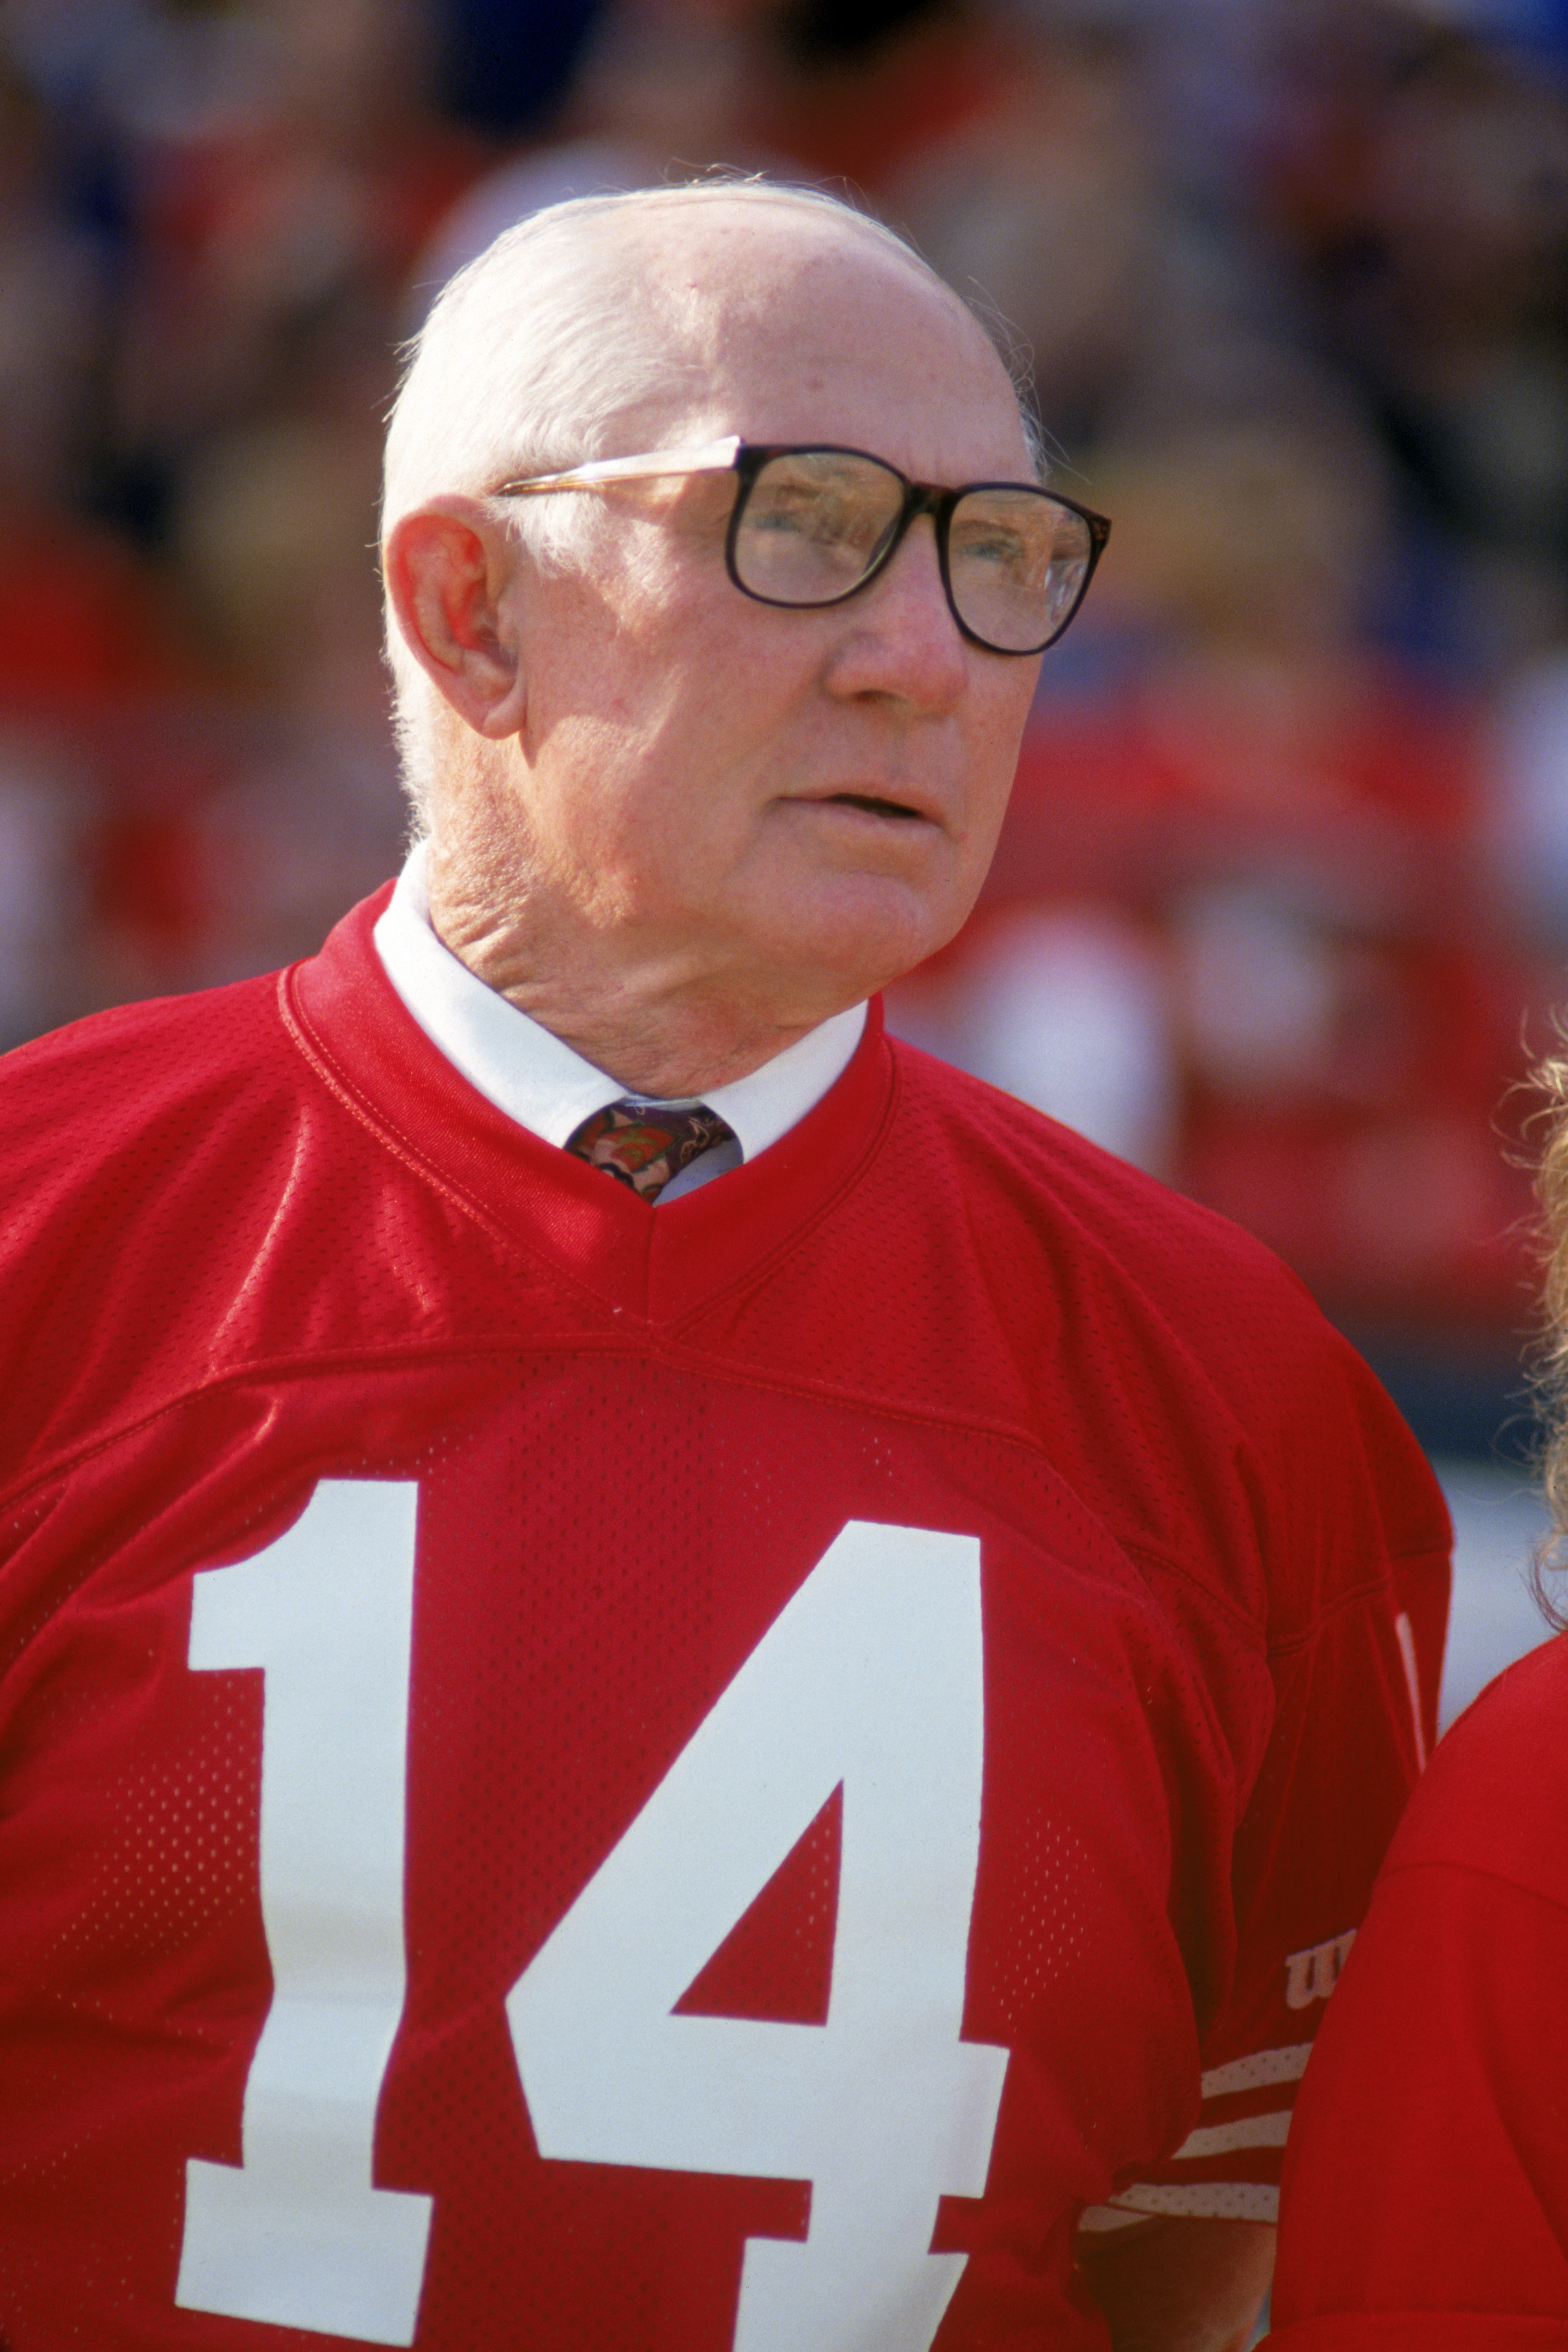 SAN FRANCISCO - NOVEMBER 15:  49ers Hall of Famer, Y.A. Tittle, attends a game between the San Francisco 49ers and New Orleans Saints at Candlestick Park on November 15, 1992 in San Francisco, California.  The 49ers won 21-20.  (Photo by George Rose/Getty